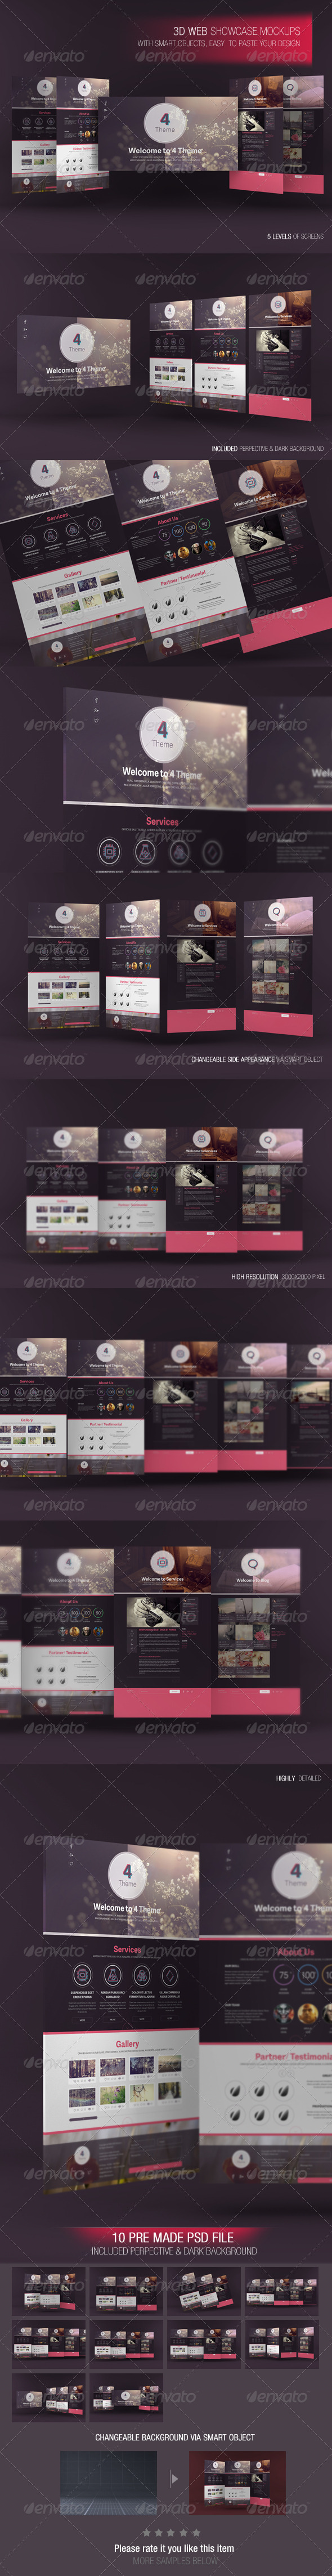 GraphicRiver 3D Web Showcase Mockups 7163919